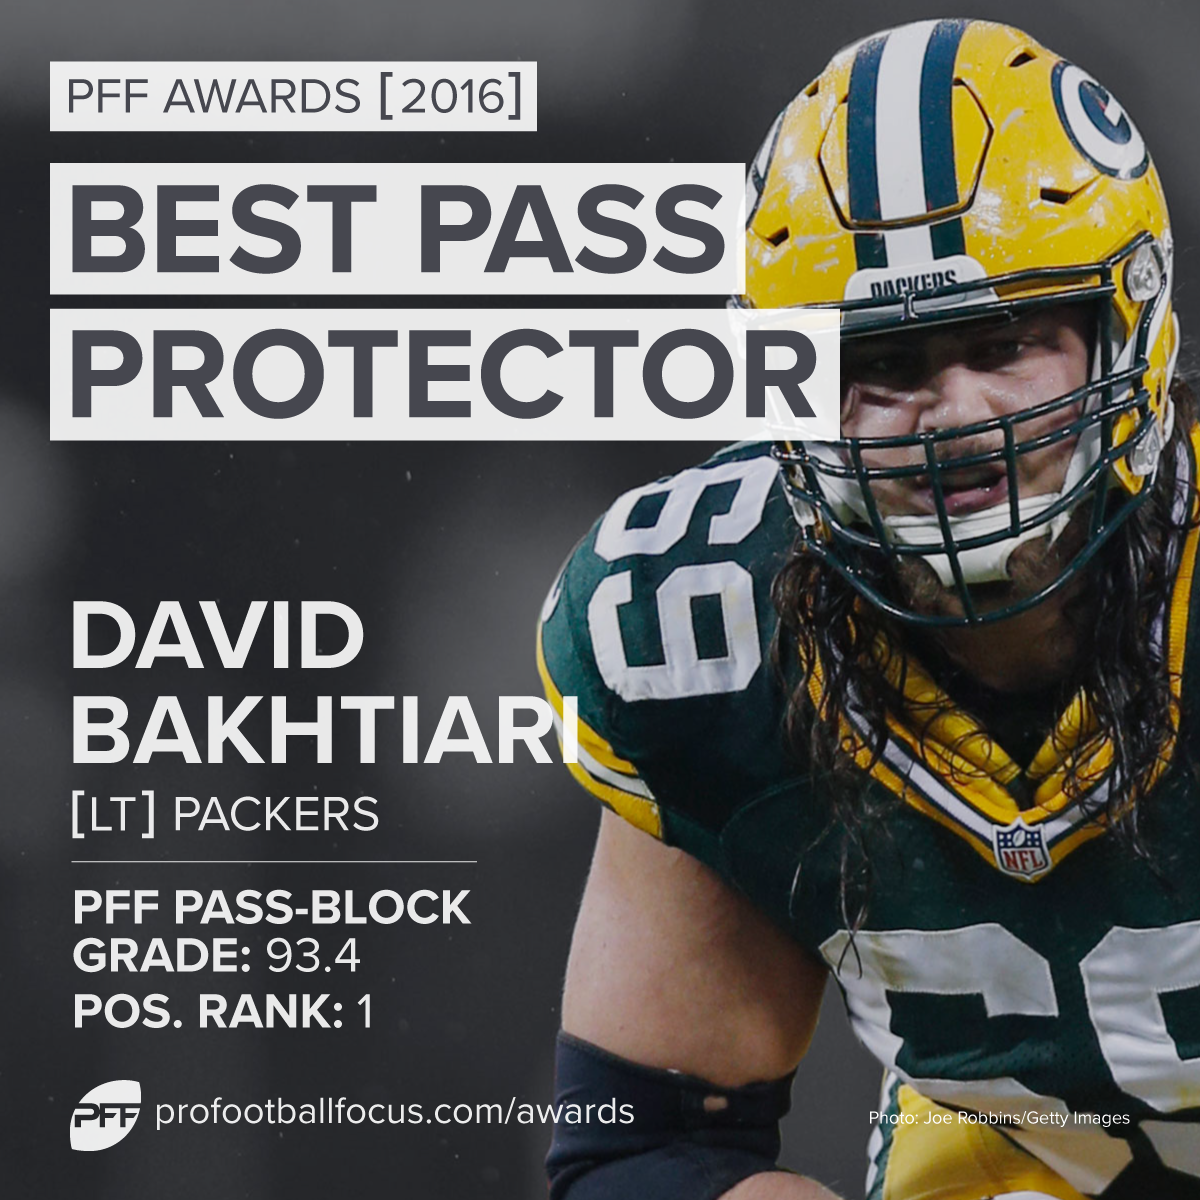 Best Pass Protector: David Bakhtiari